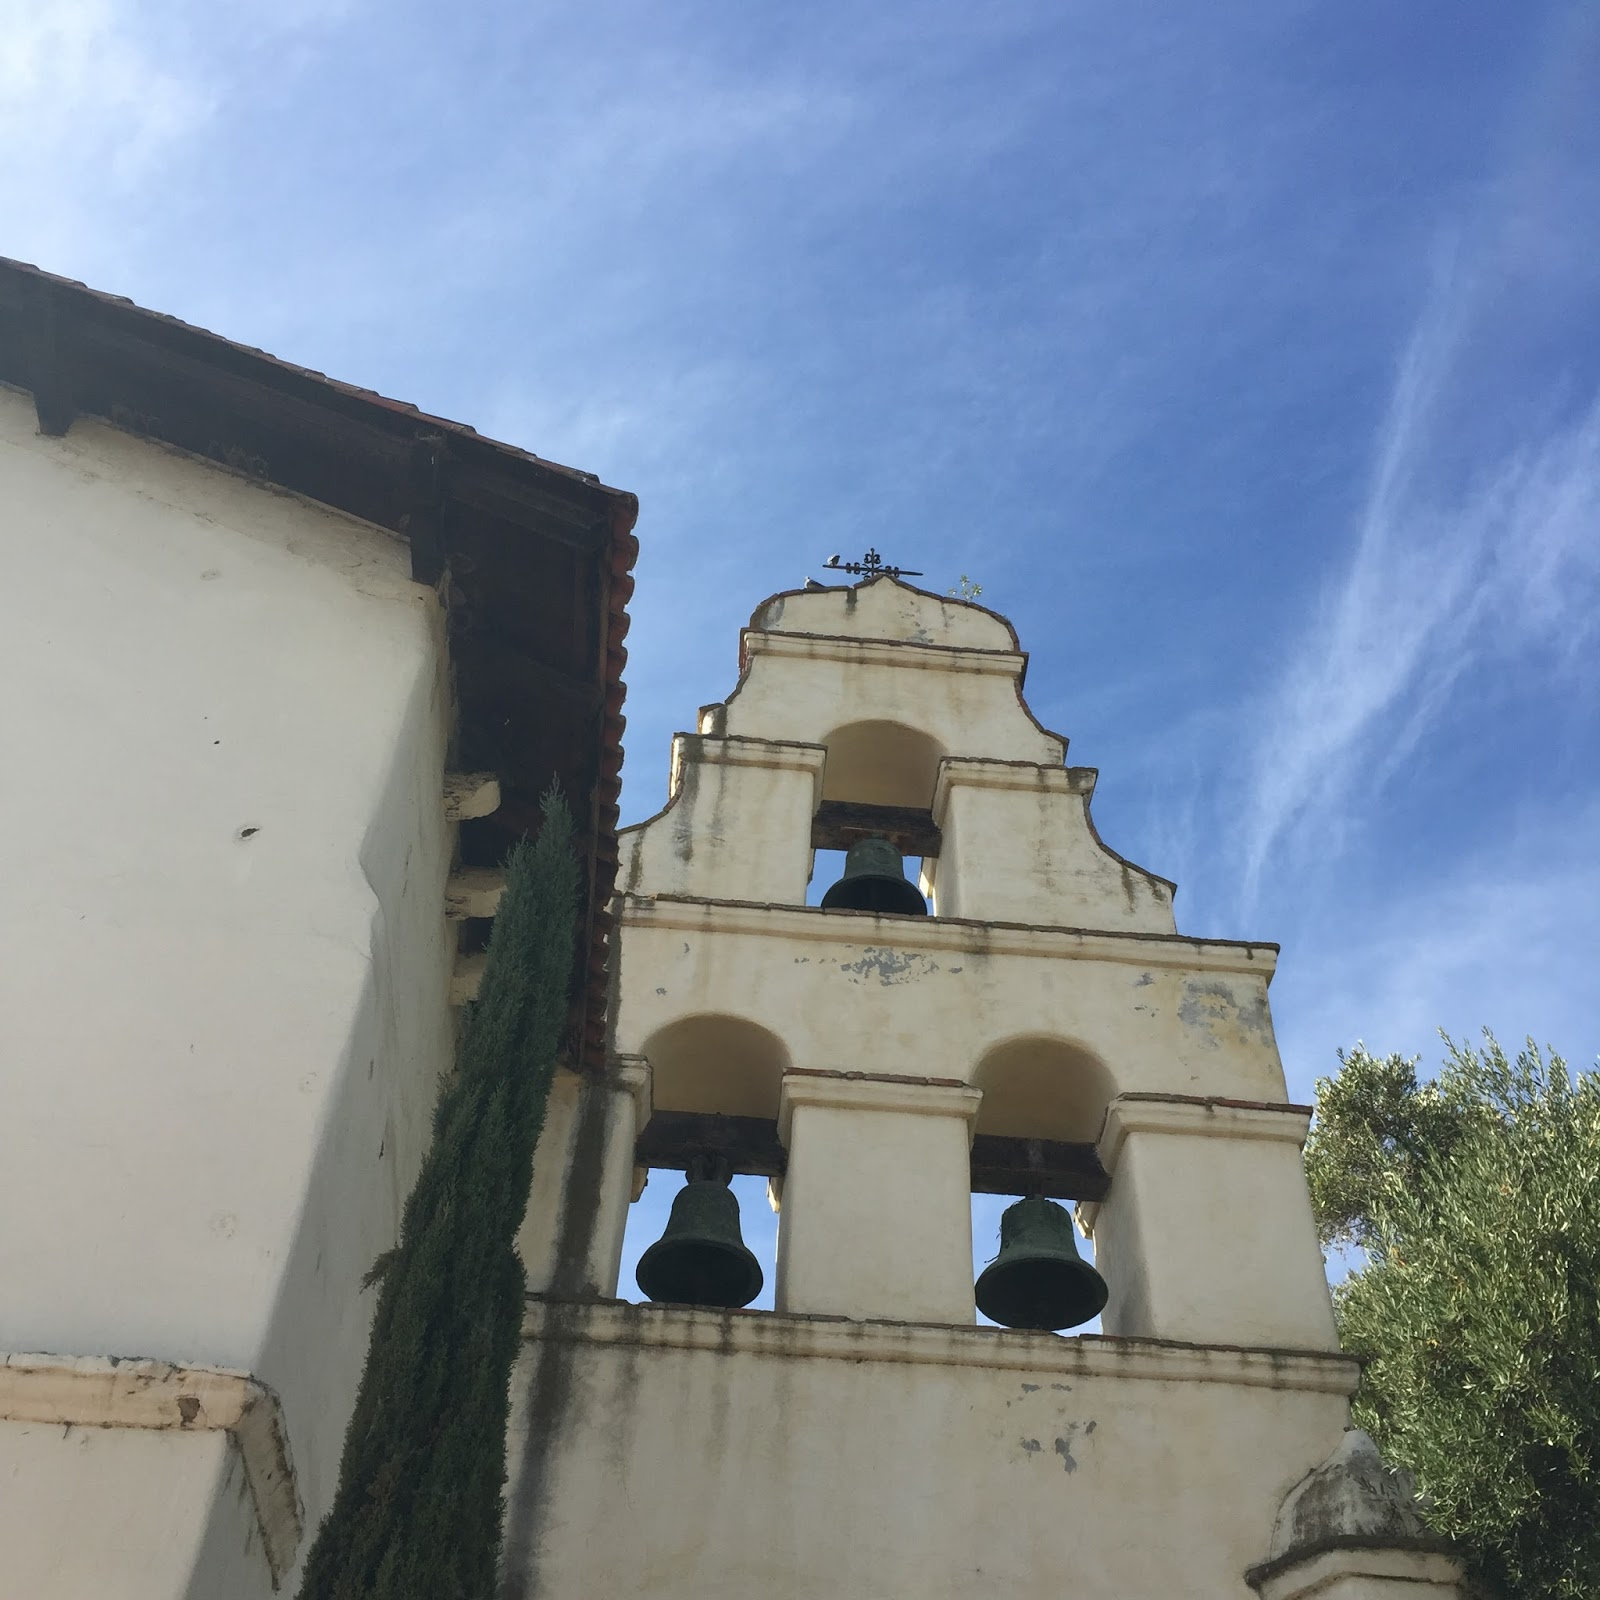 The mission is located on the hilltop of beautiful san juan bautista although it is not in a coastal town it still gets that nice coastal climate in a